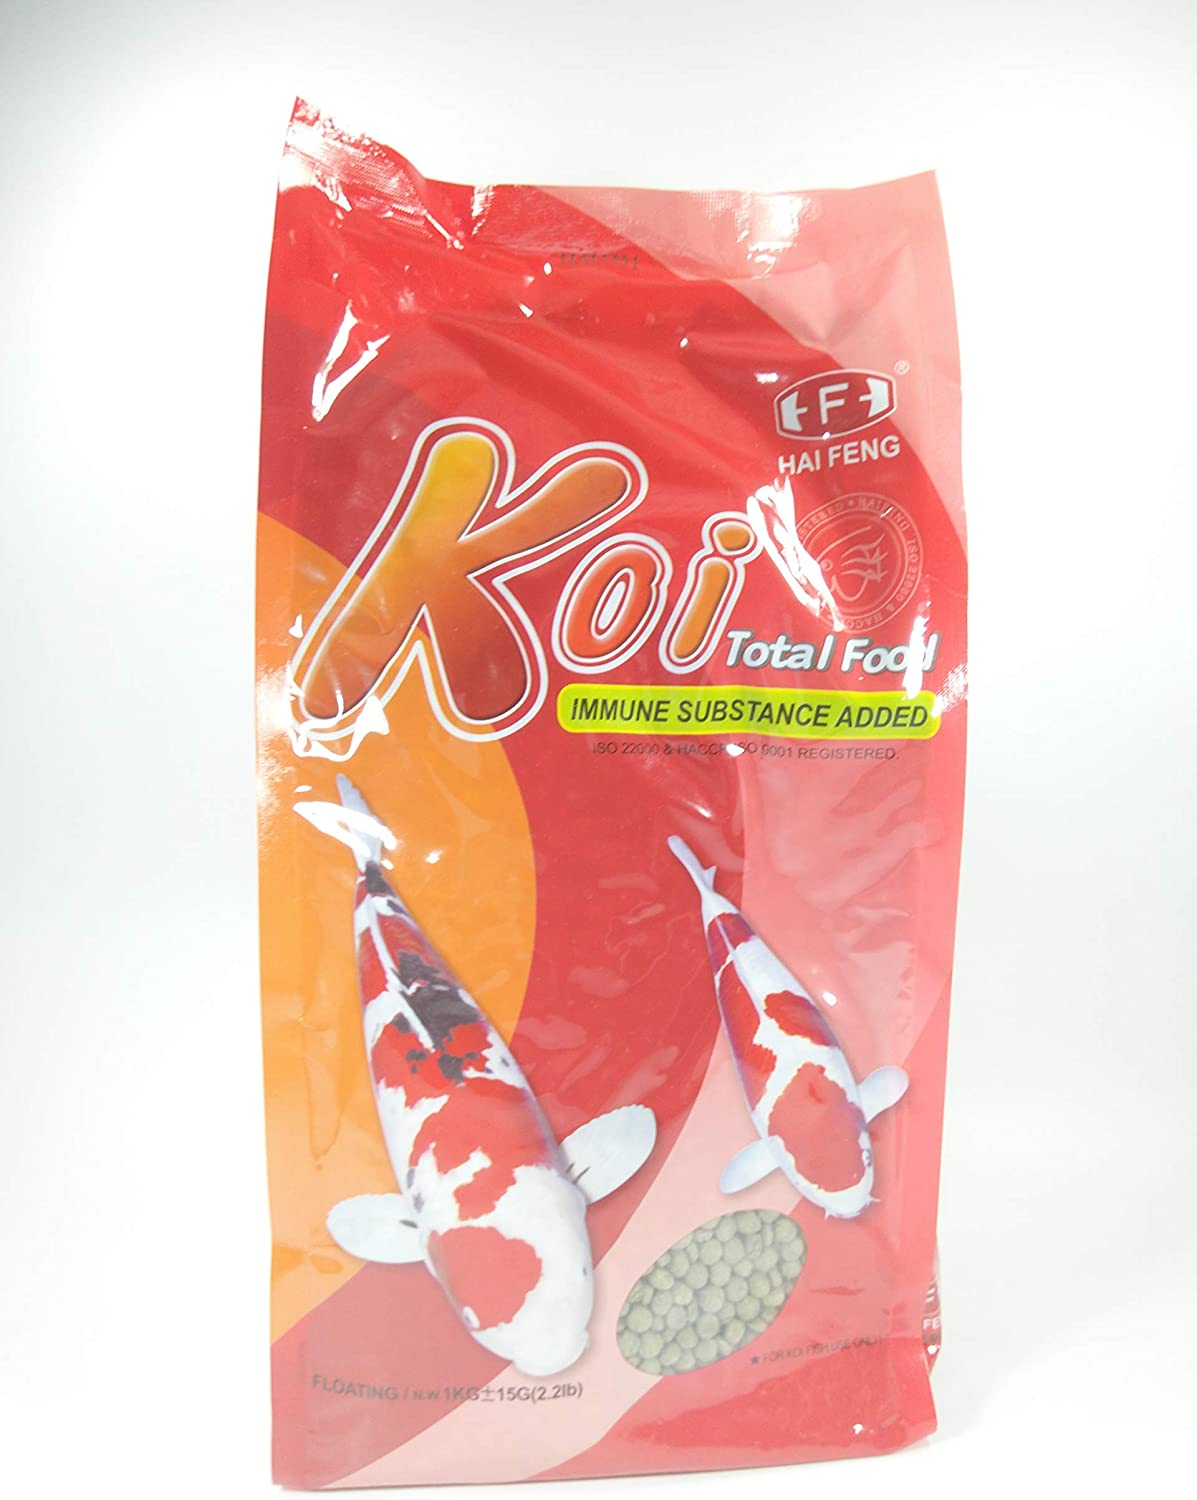 Hai Feng Koi Fish Total Food Floating N.W. 1kg(2.2lb), Large Pellet, ISO 22000 & HACCP, ISO 9001 Registered